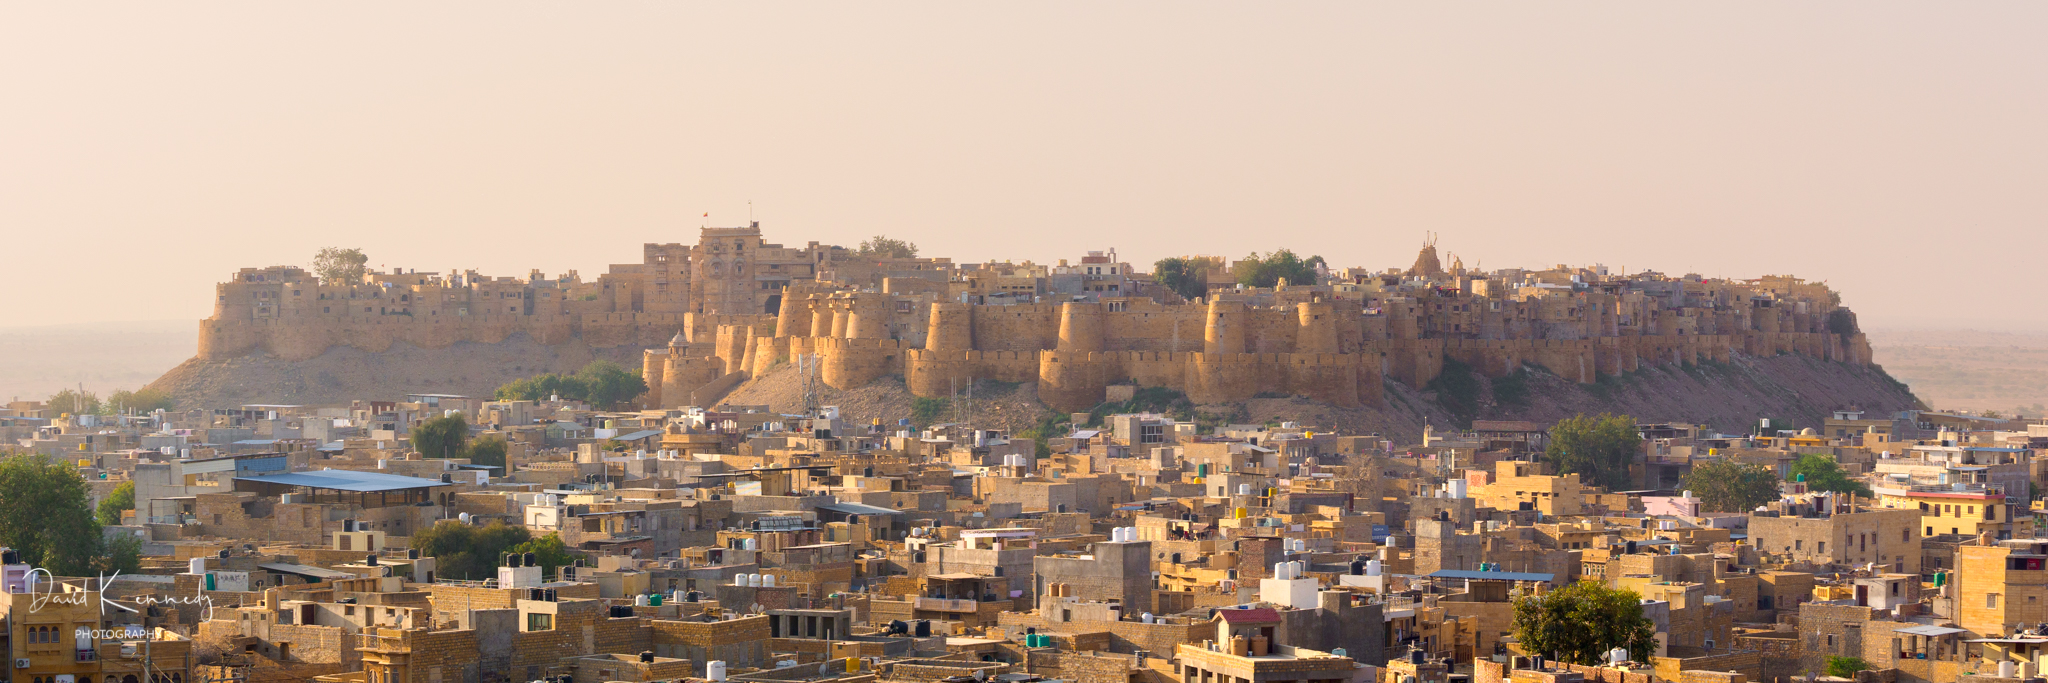 View of the Fort and Old Town in Jaisalmer, India